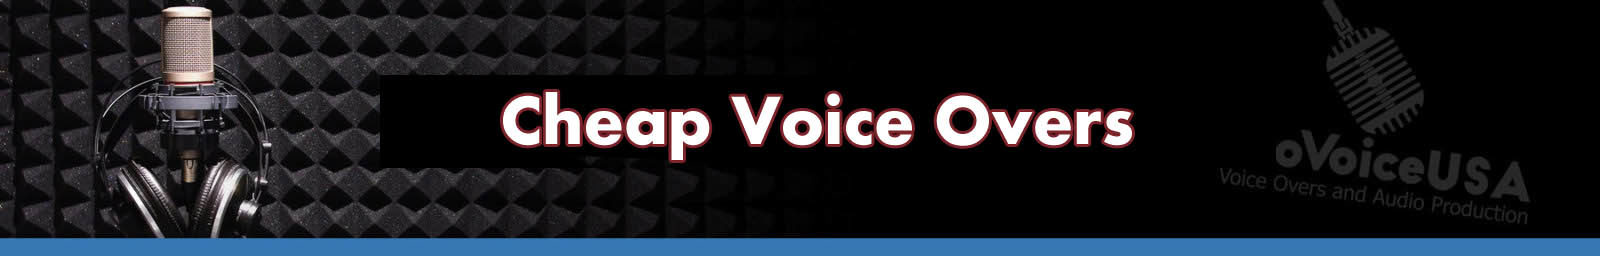 Cheap Voice Overs header